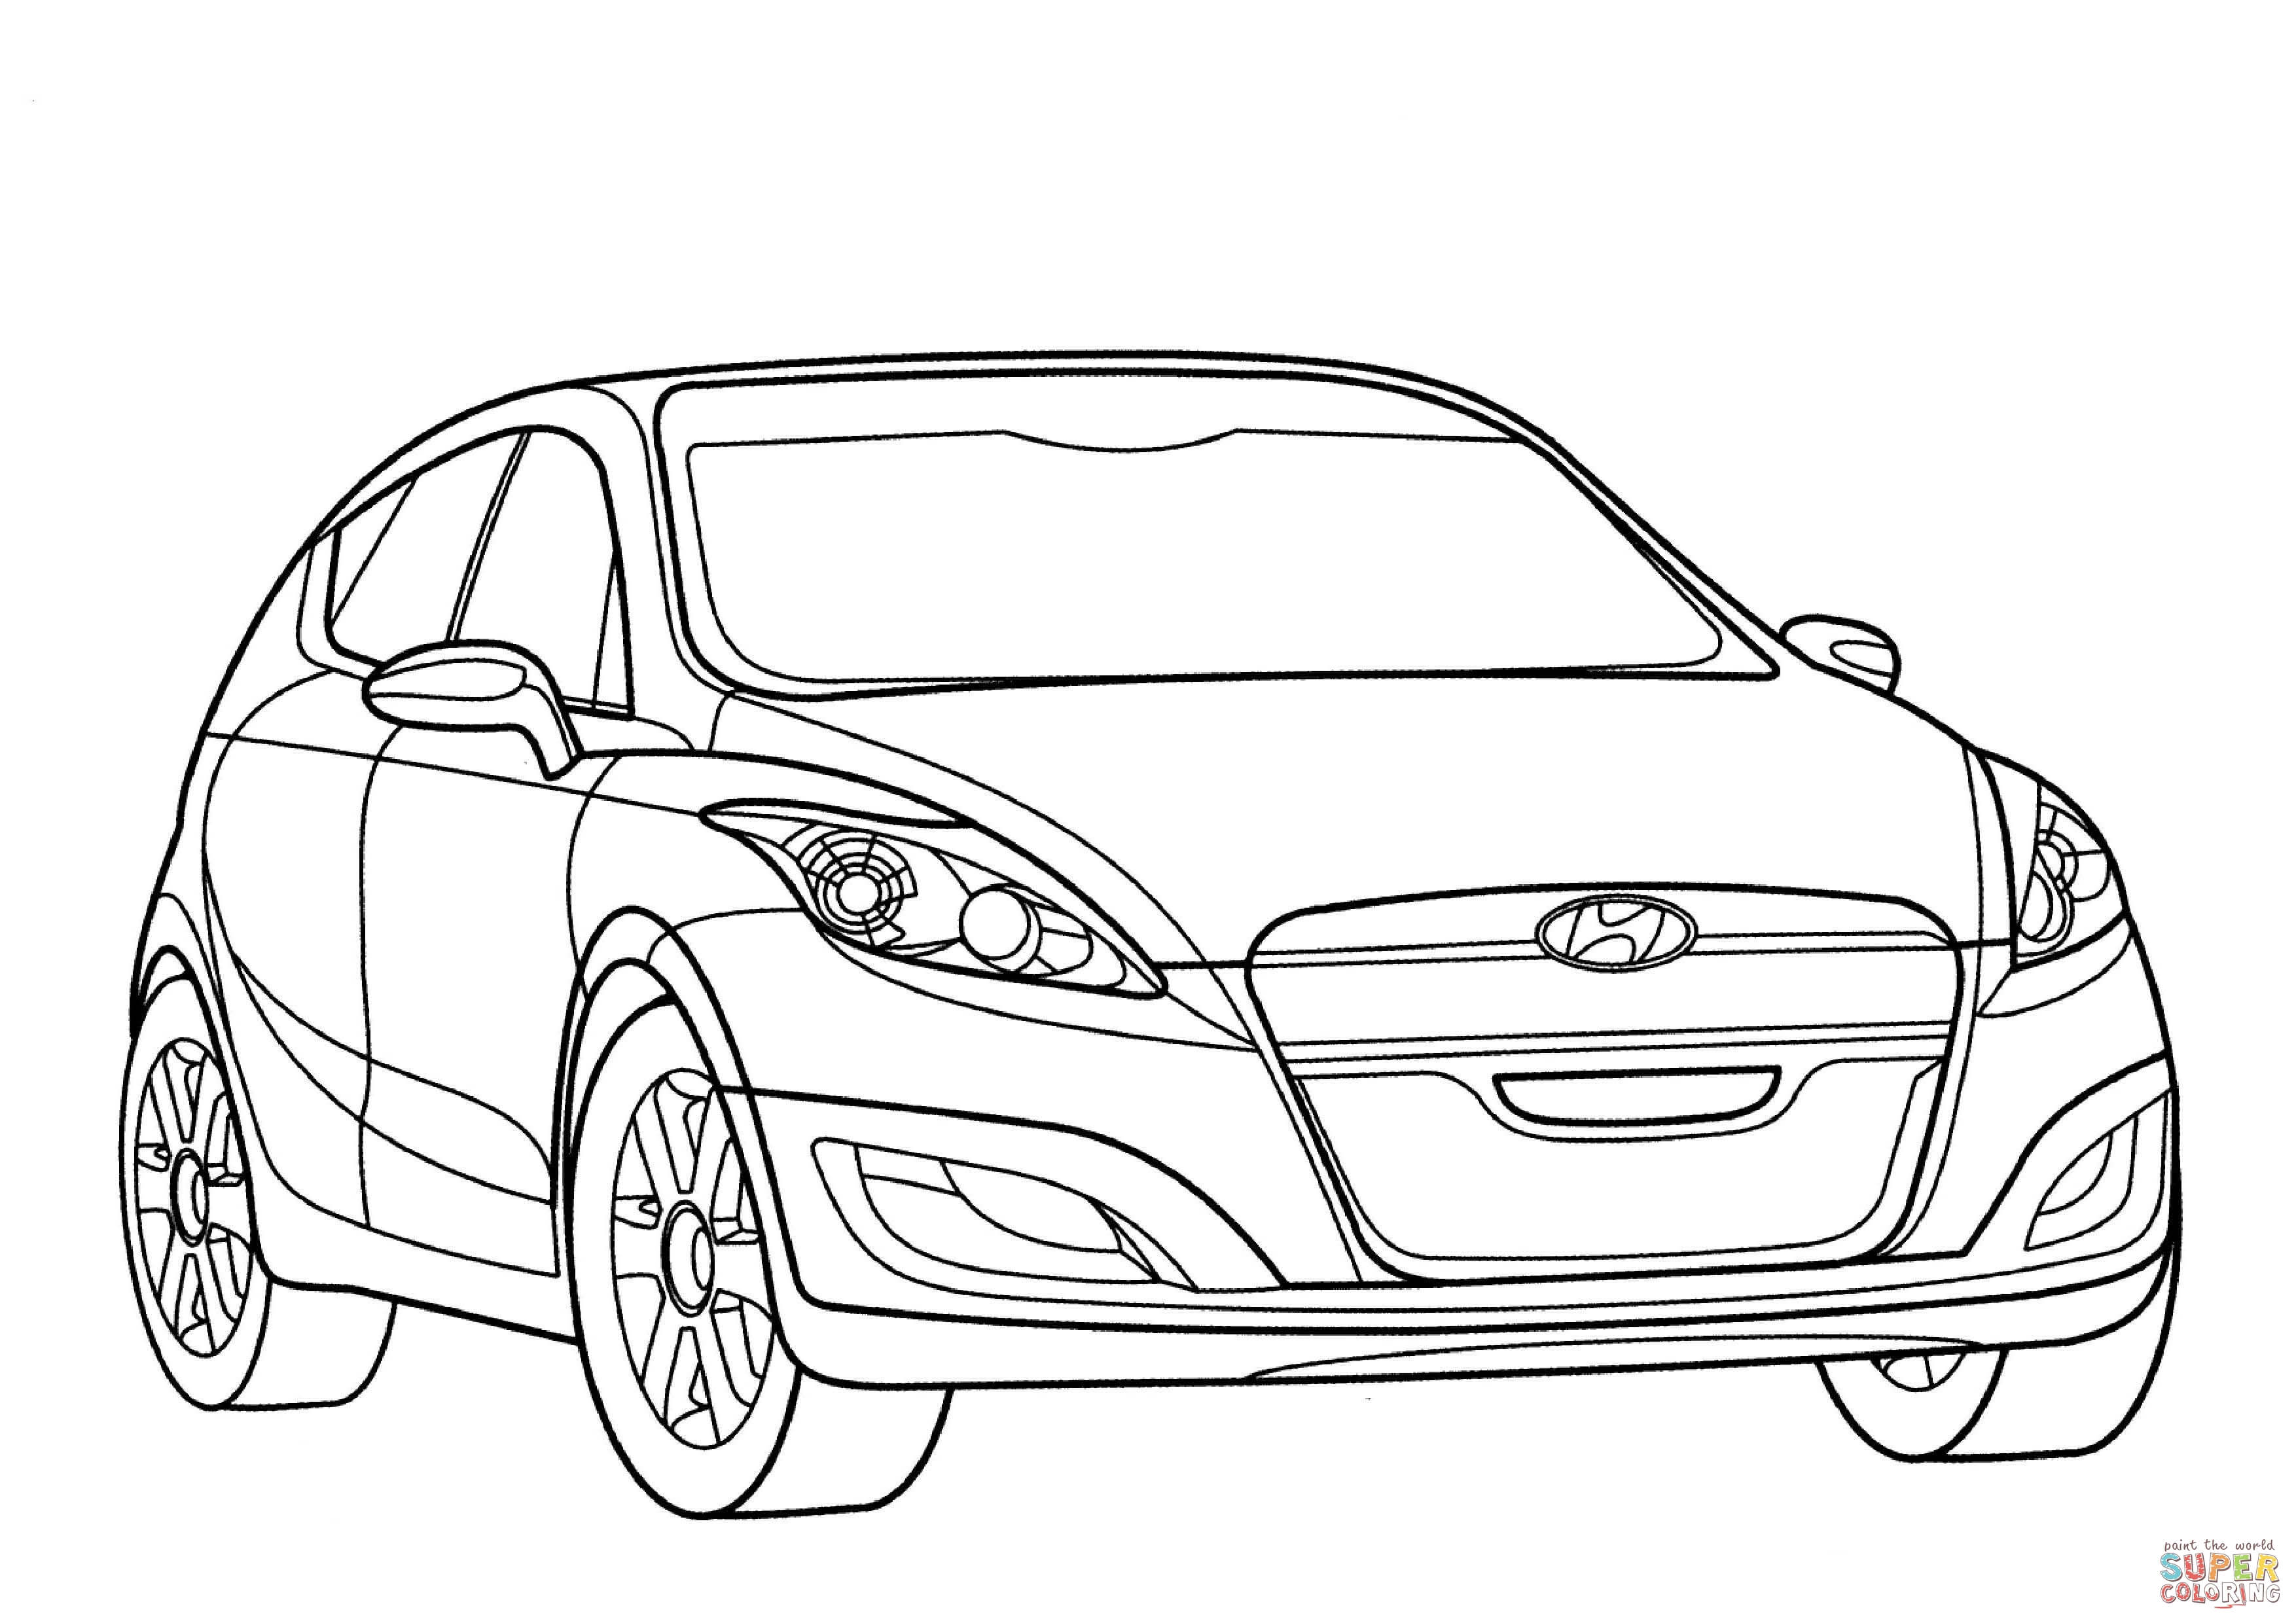 Santa Fe Coloring Pages With Hyundai Arnejs Page Free Printable